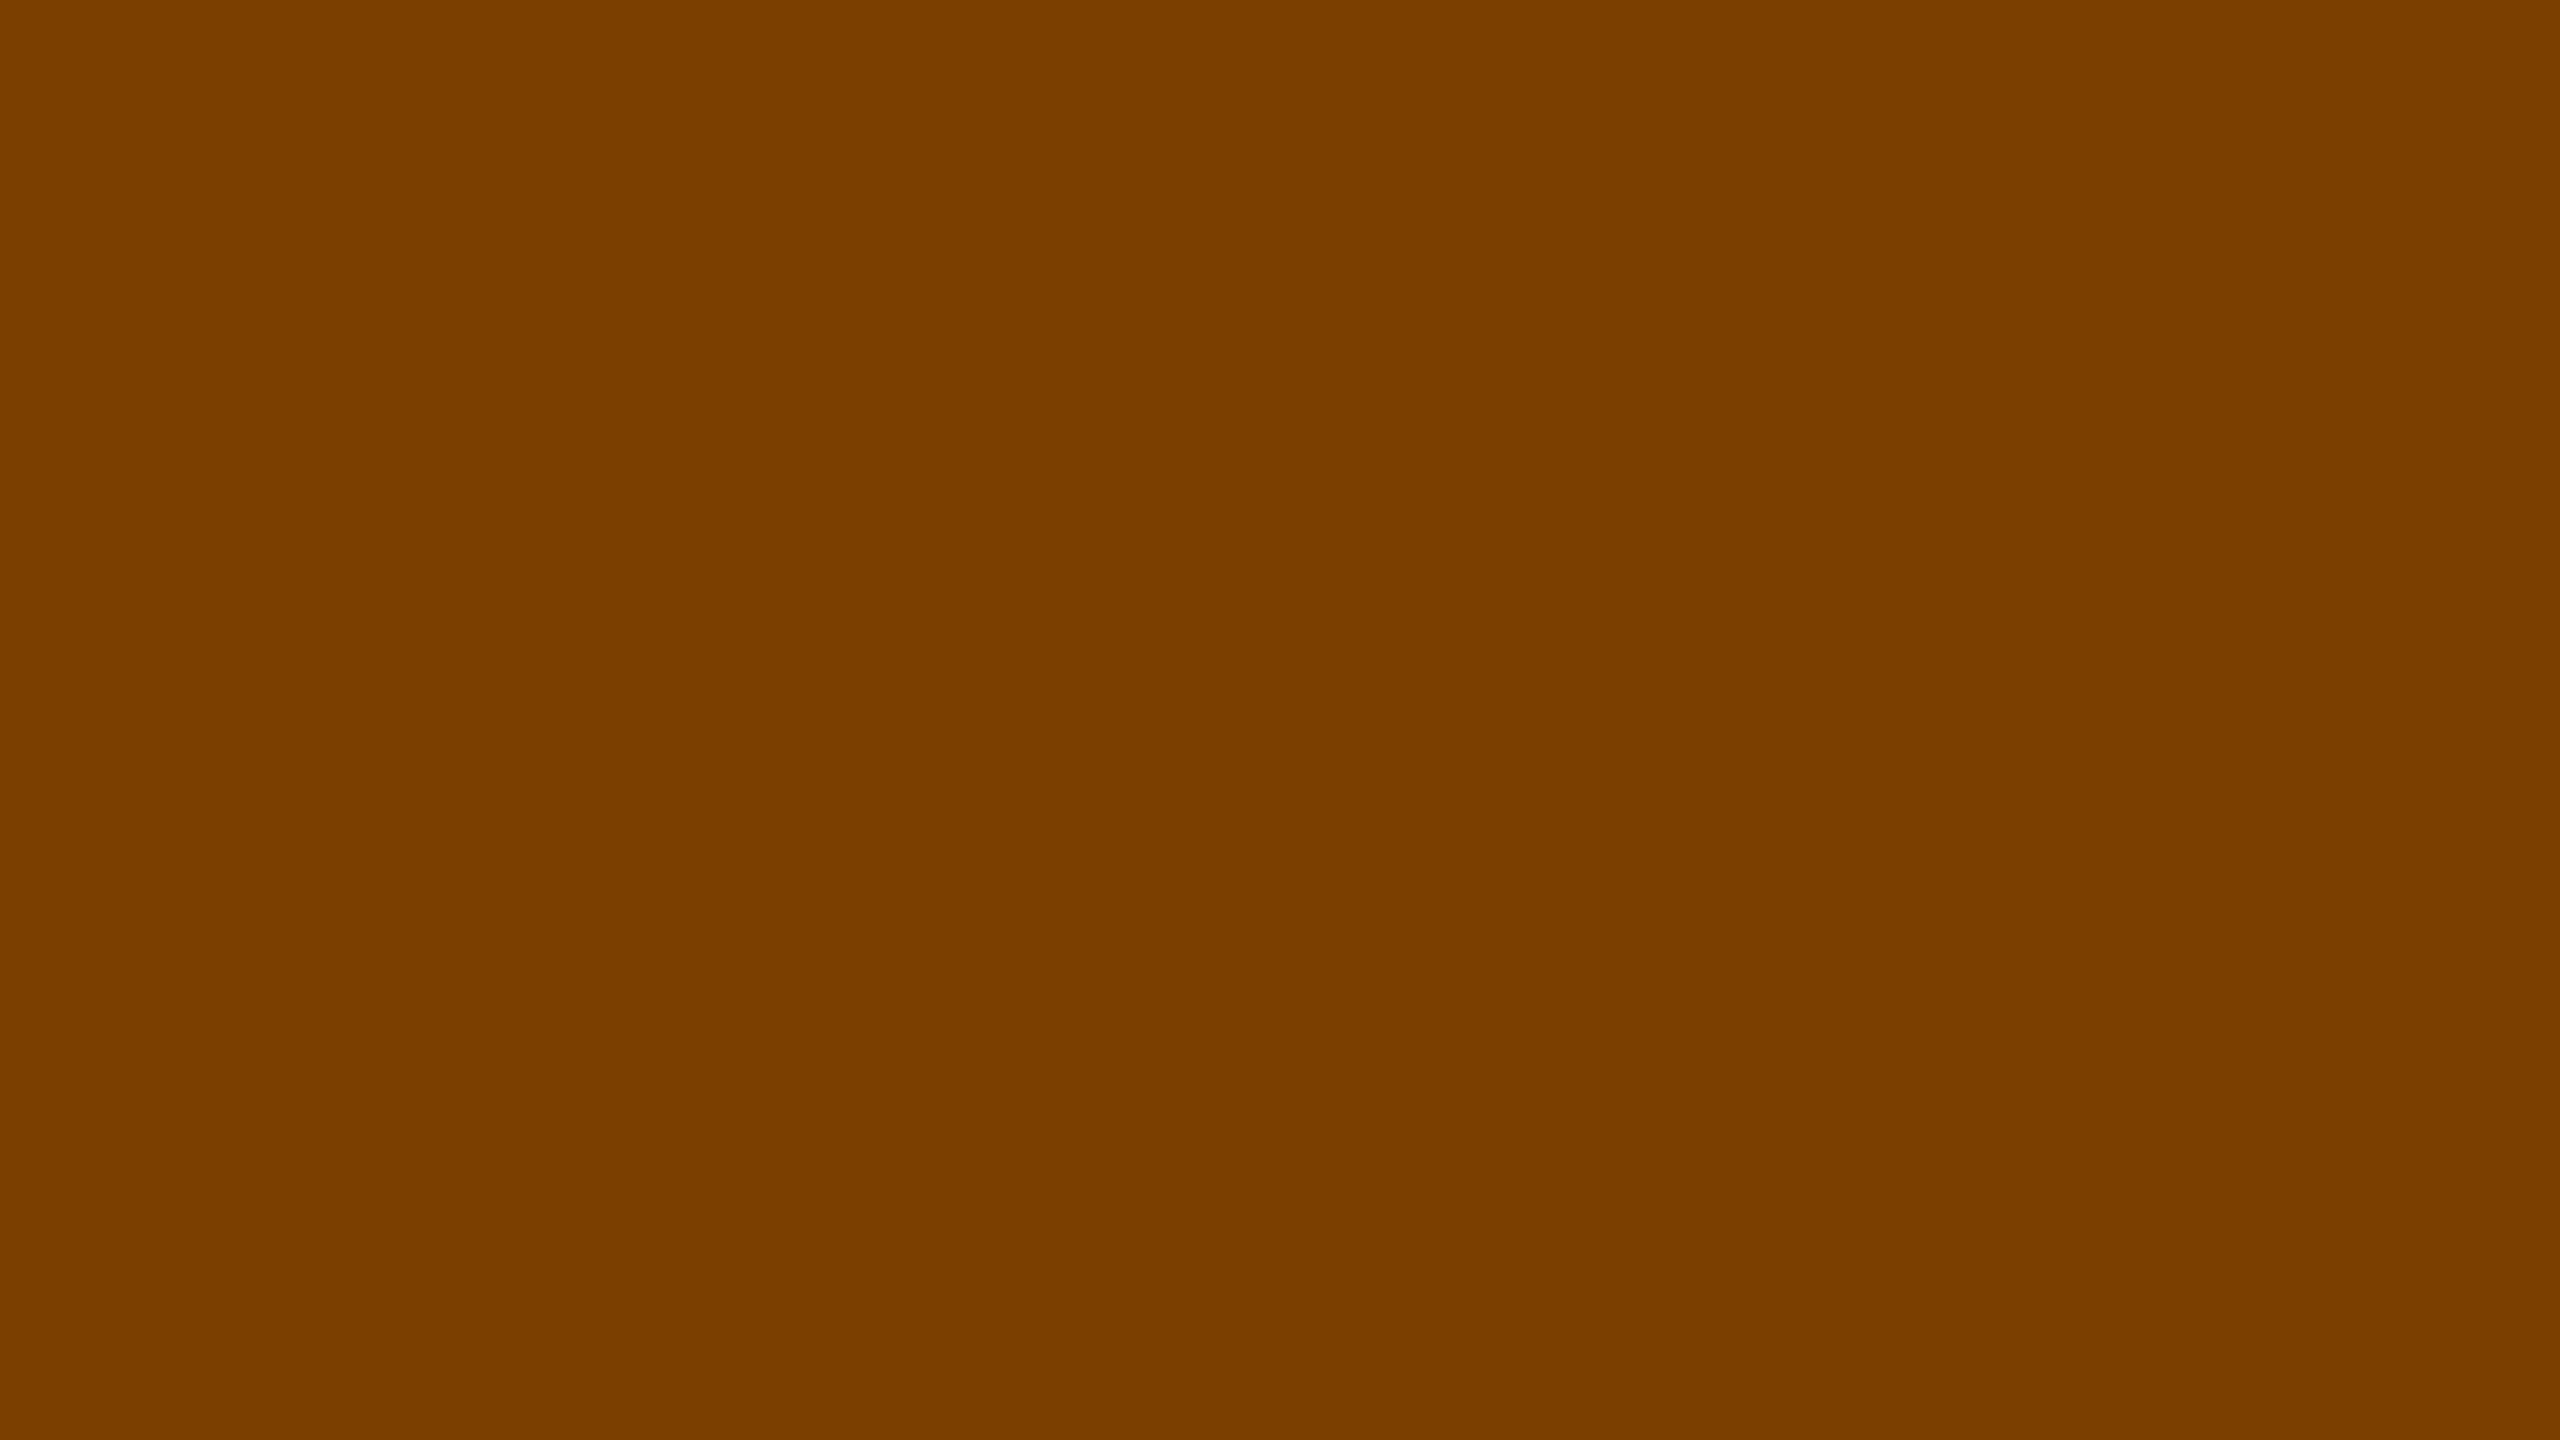 2560x1440 Chocolate Traditional Solid Color Background